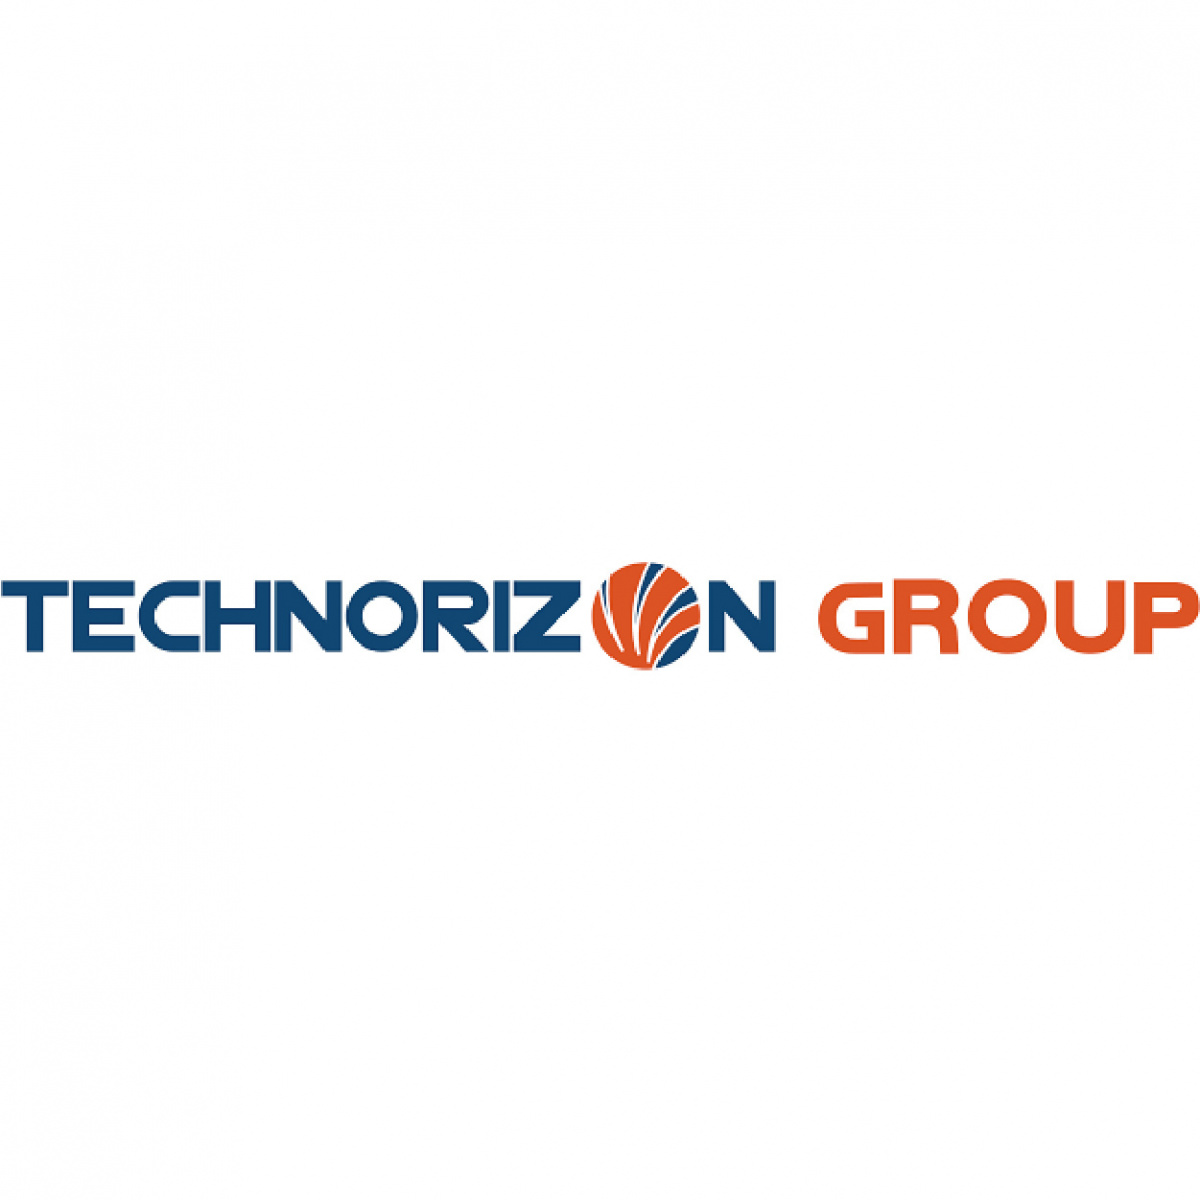 SecureAge Partner Technorizon Group